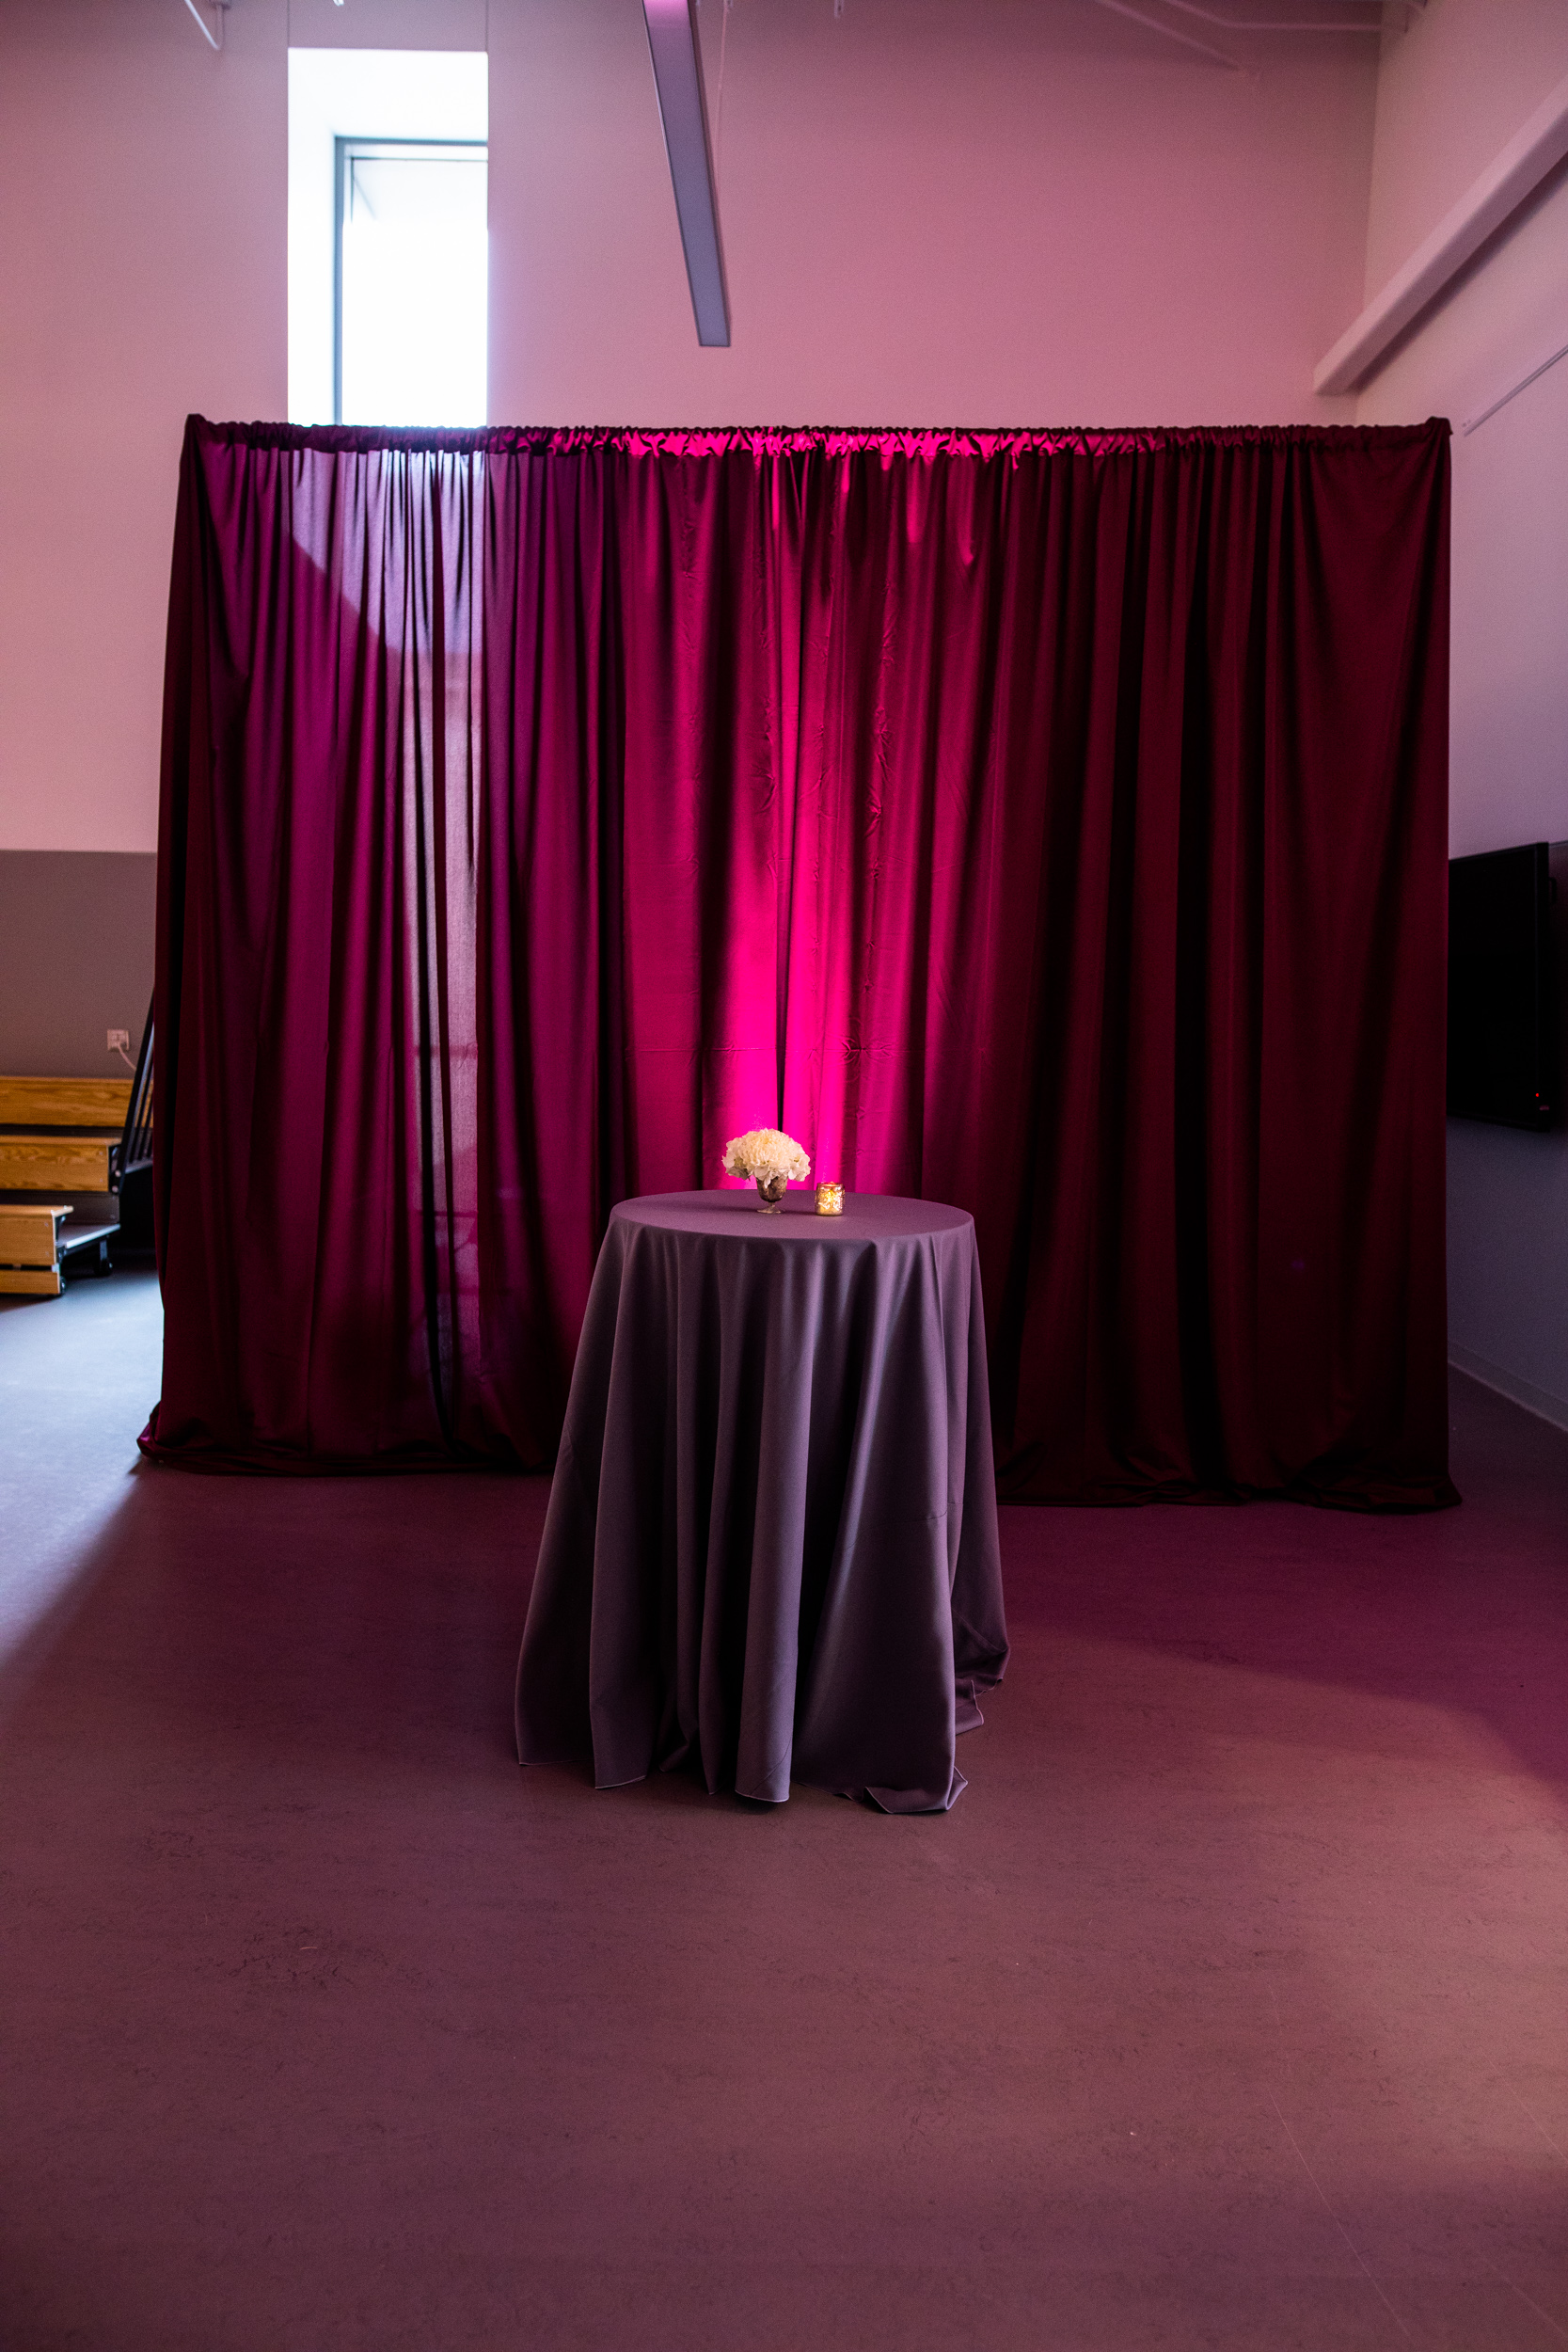 Corporate_Production_Phillips_Exeter_Academy_Pizzuti_Awards_Dinner_drape_floral